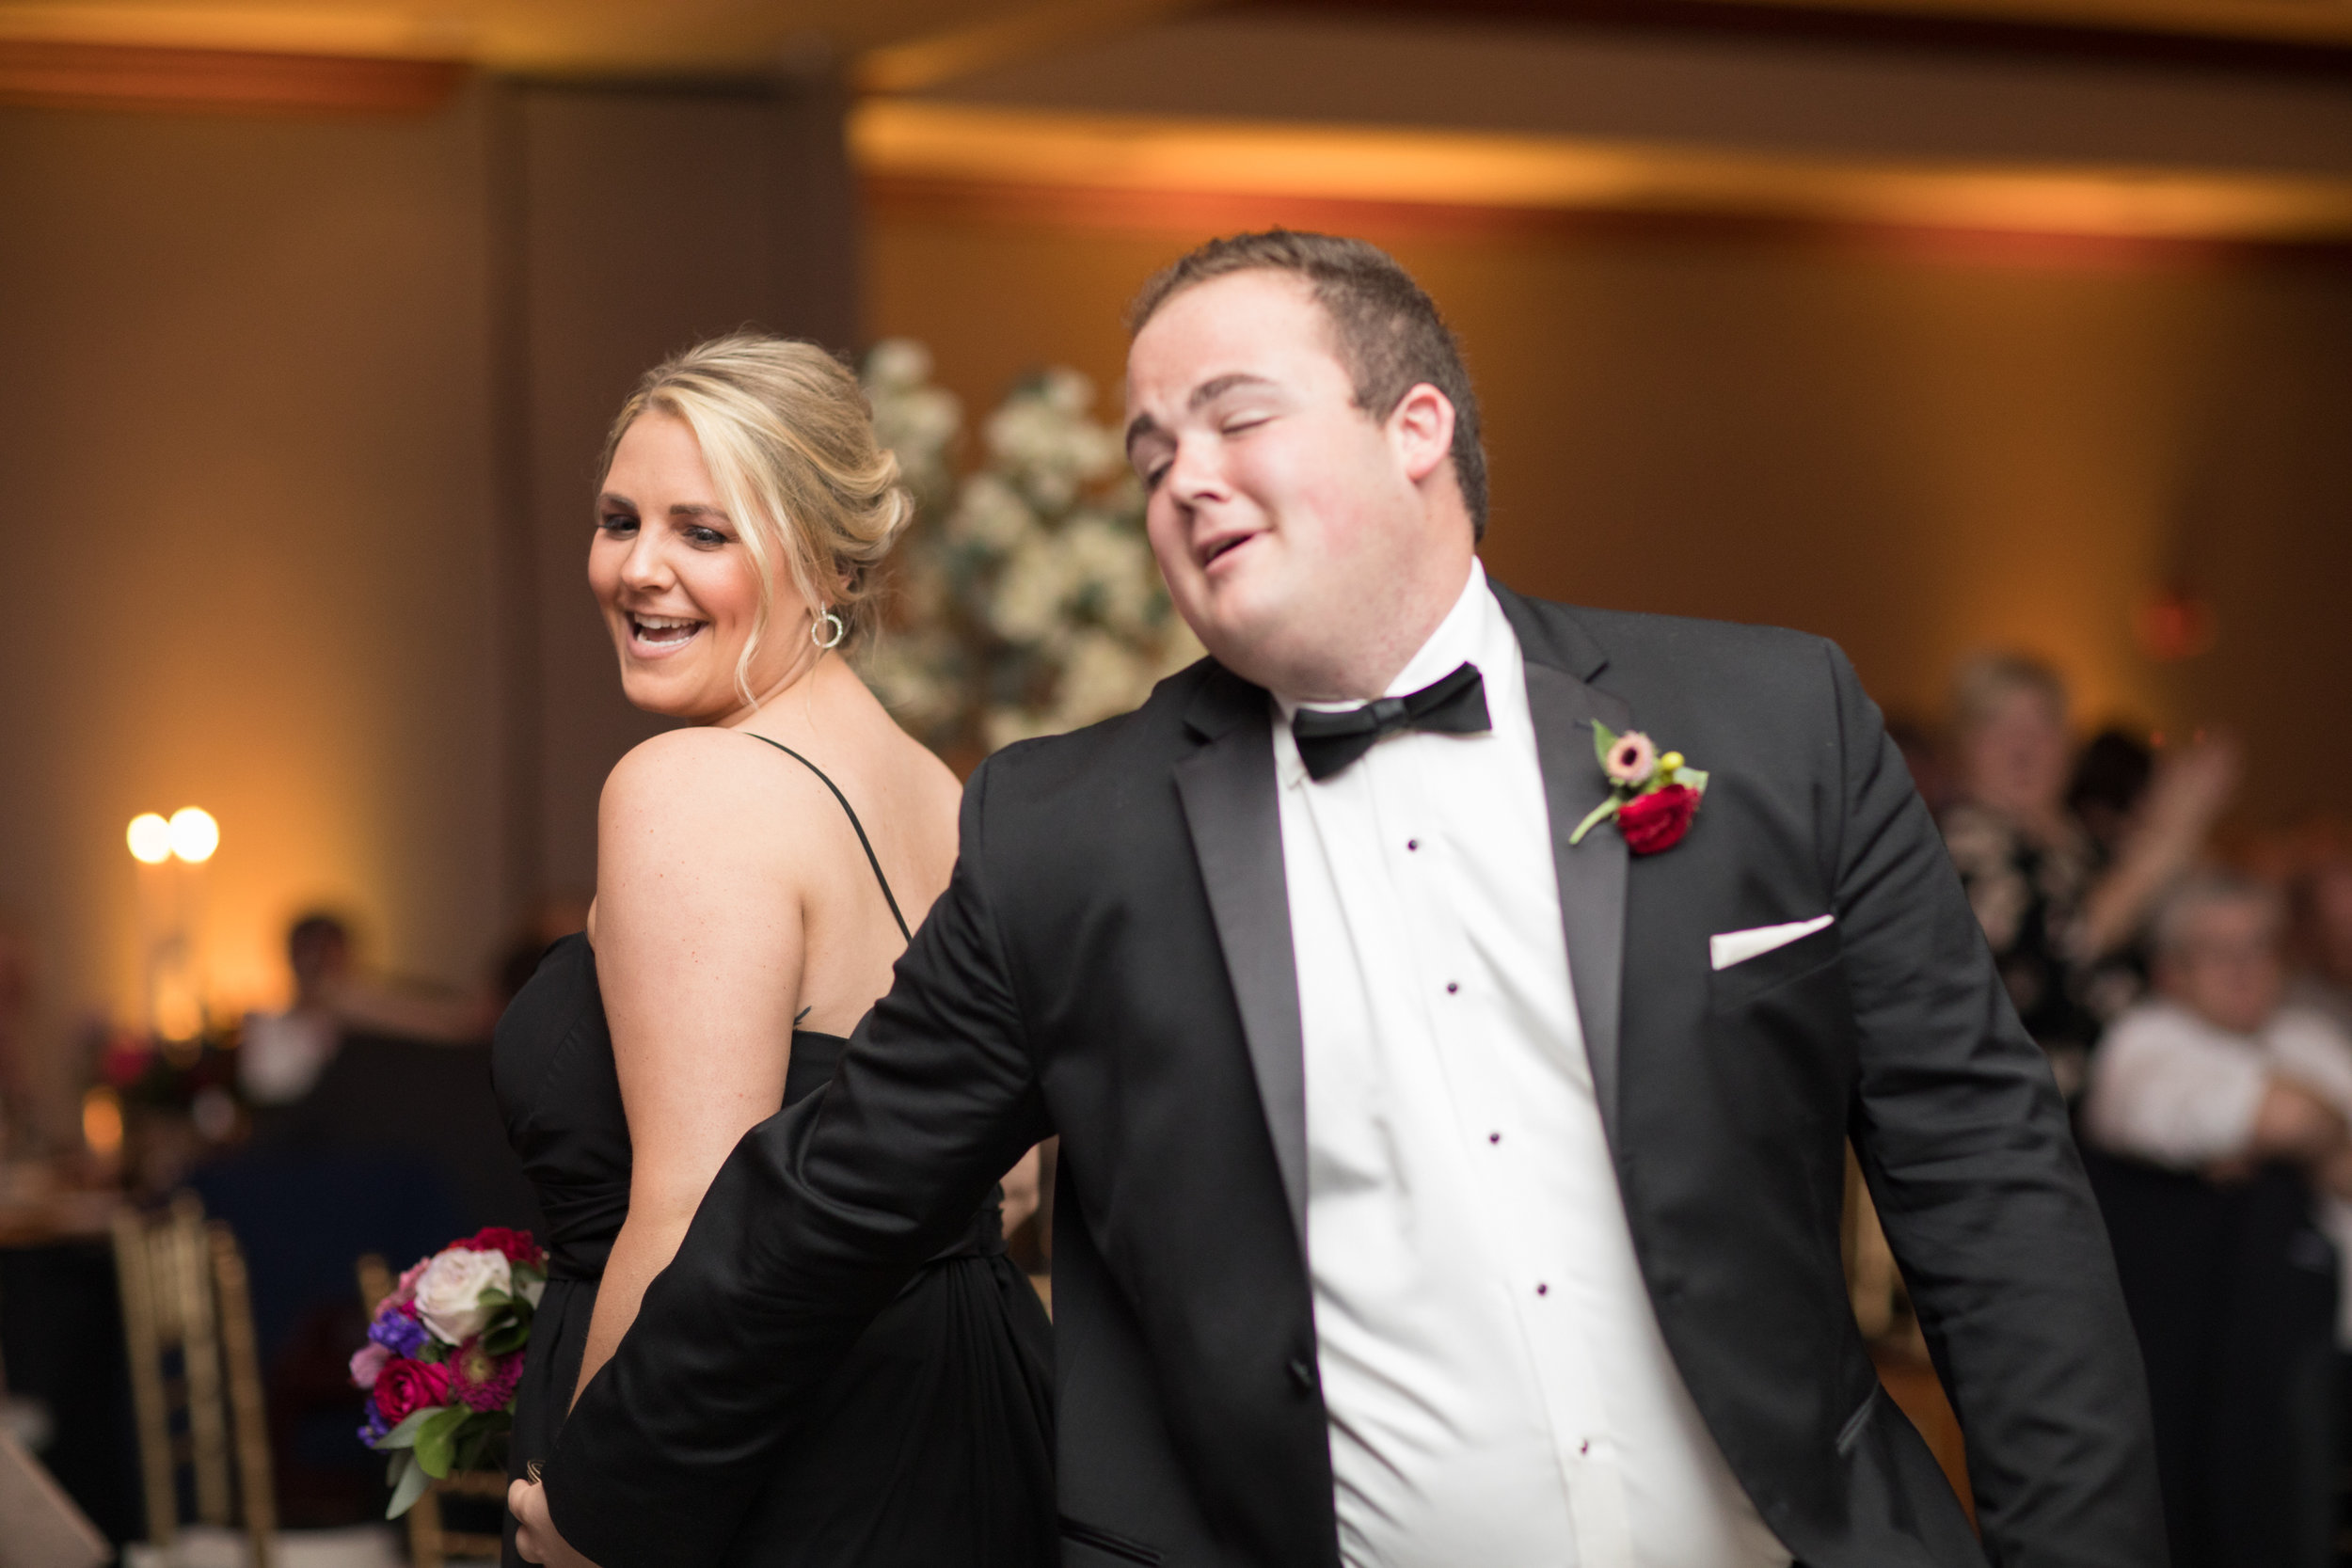 Hilton Scranton PA Wedding Photos_JDP-114.jpg